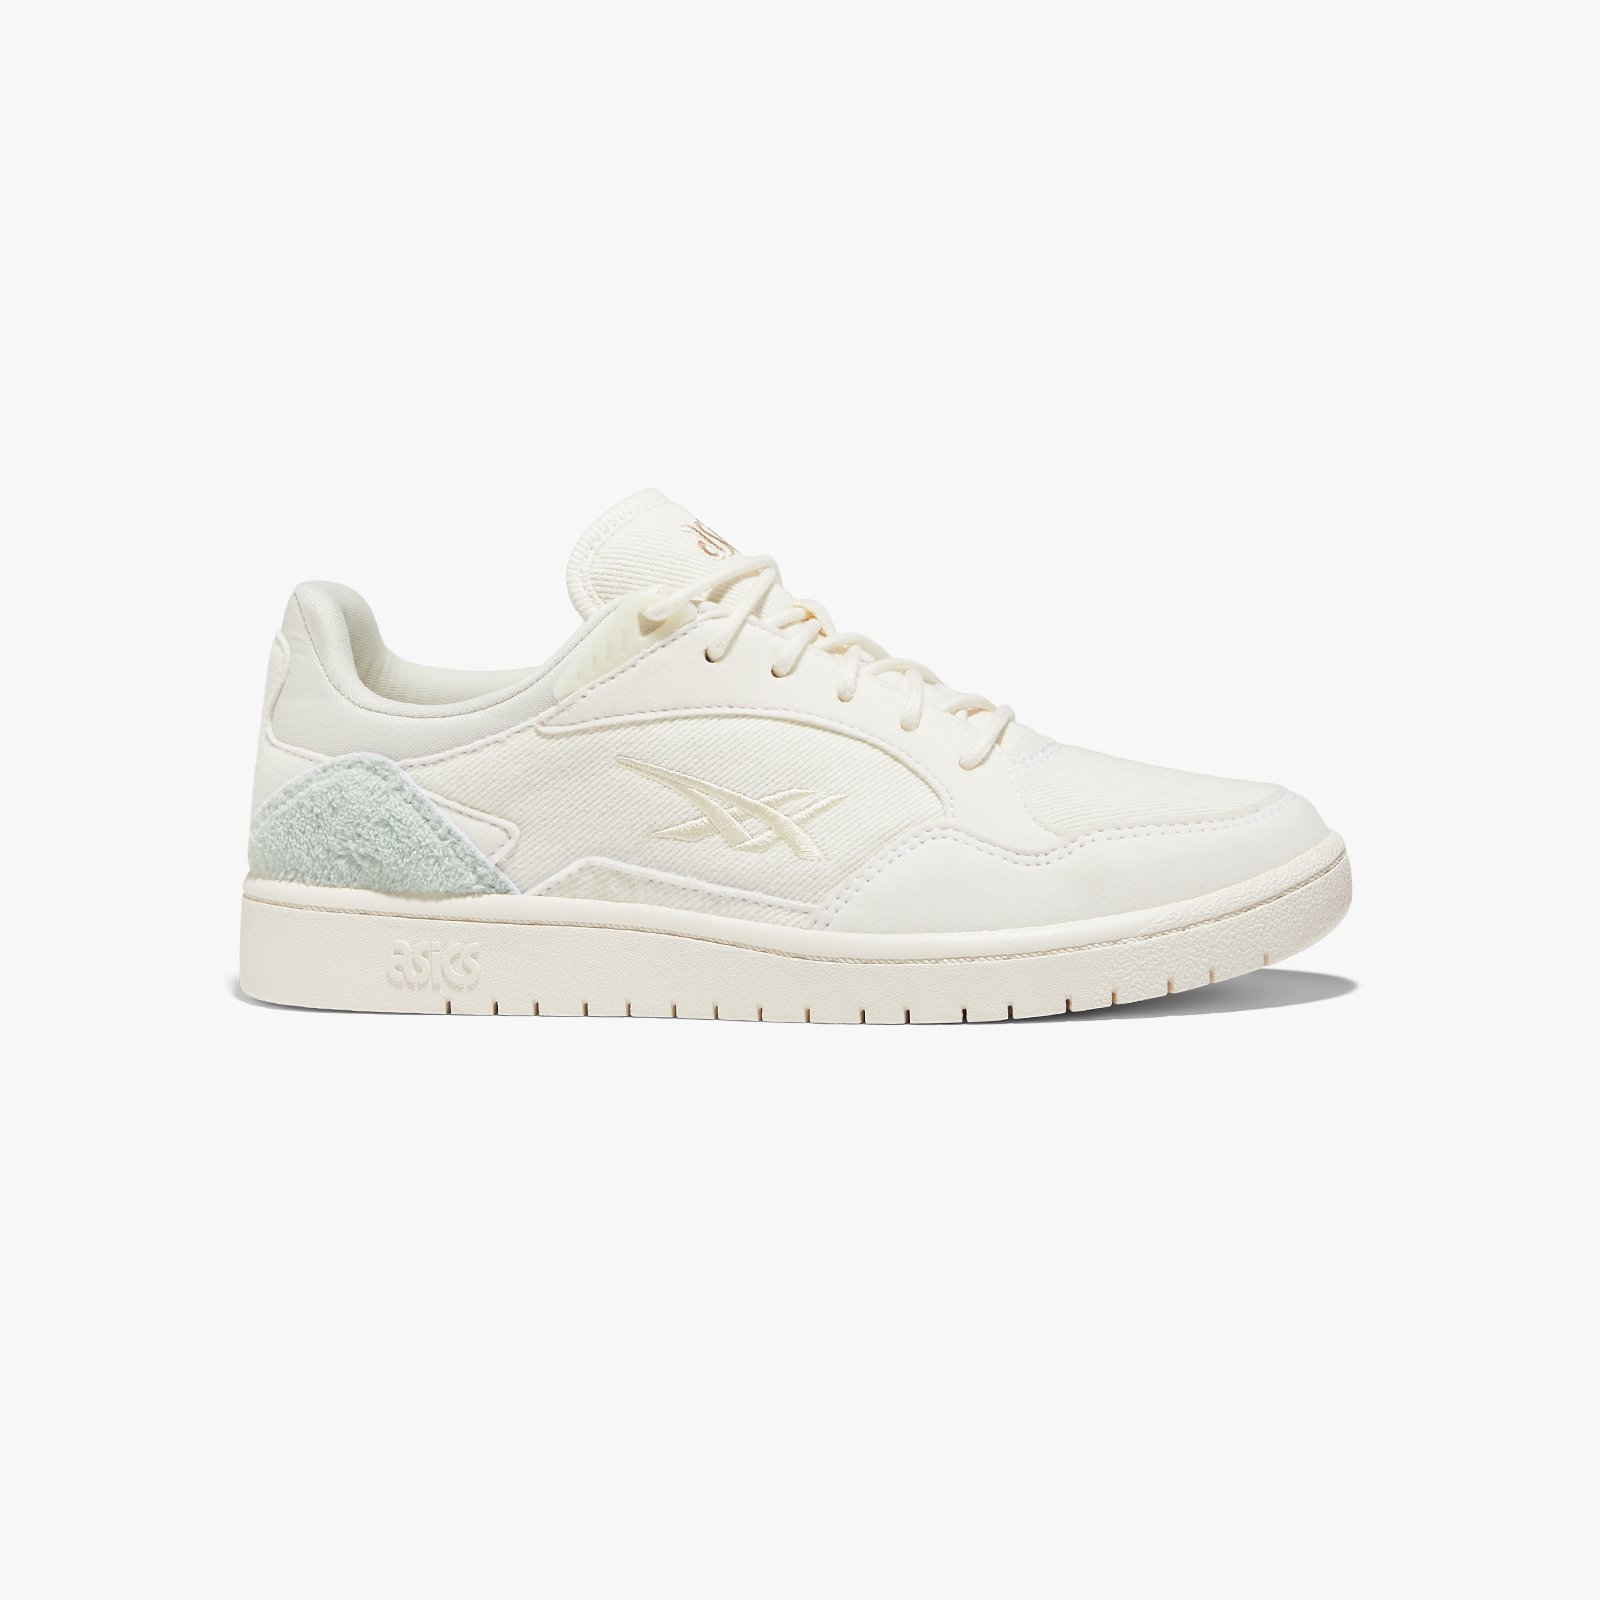 Asics Sportstyle Wmns Skycourt - 1202a133-100 - SNS | sneakers ...